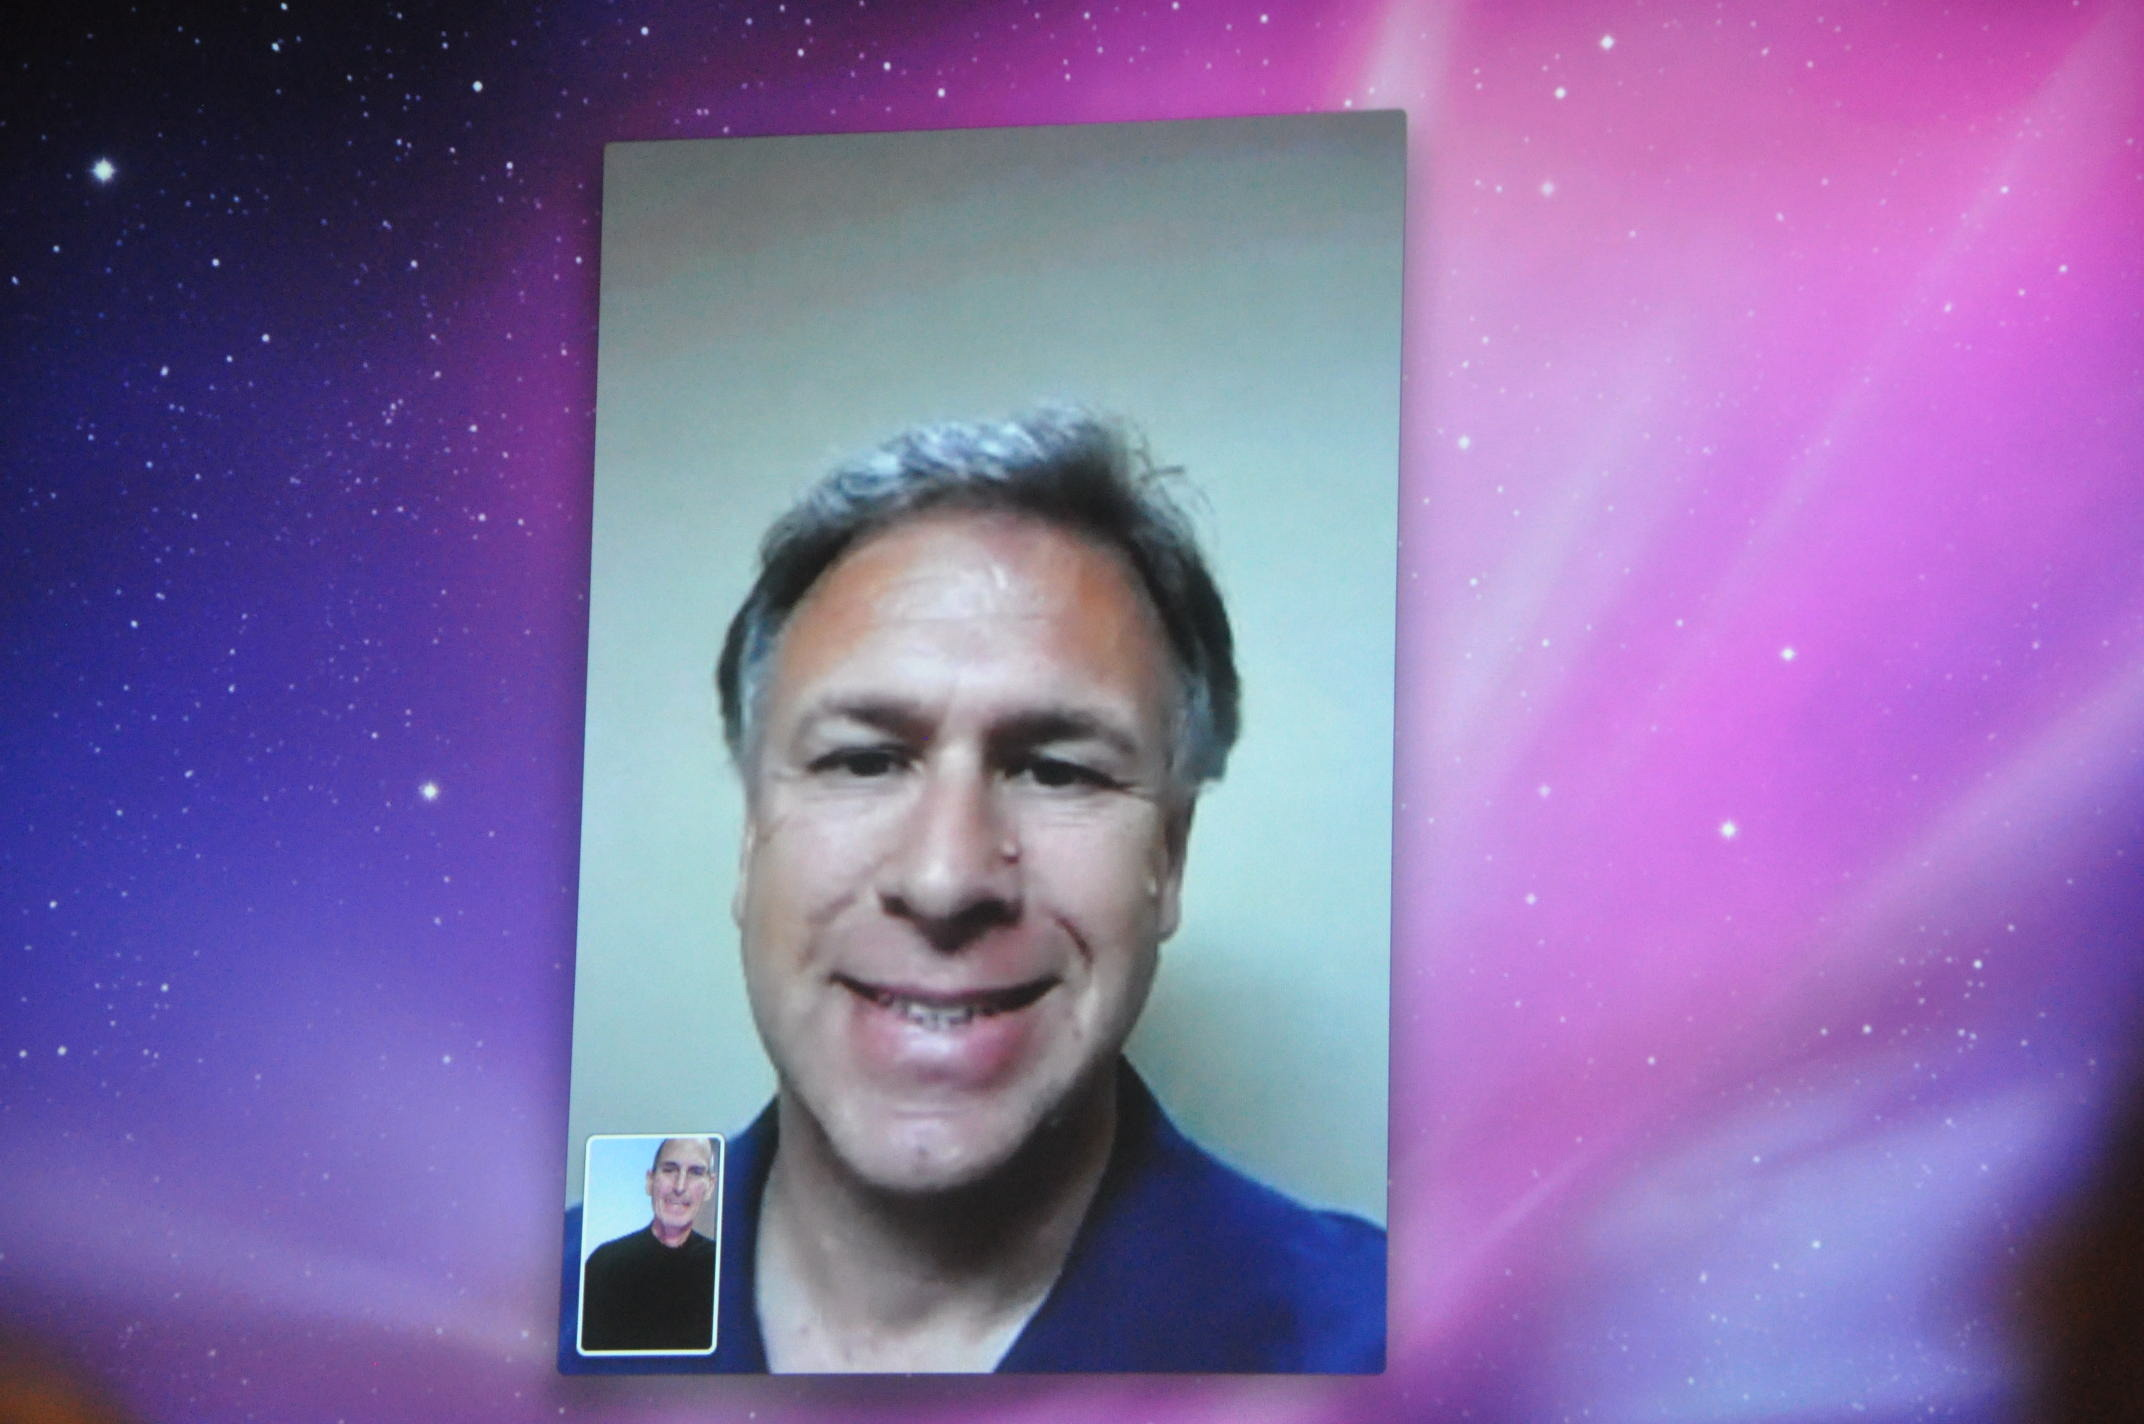 Phil Schiller and Steve Jobs chat on FaceTime